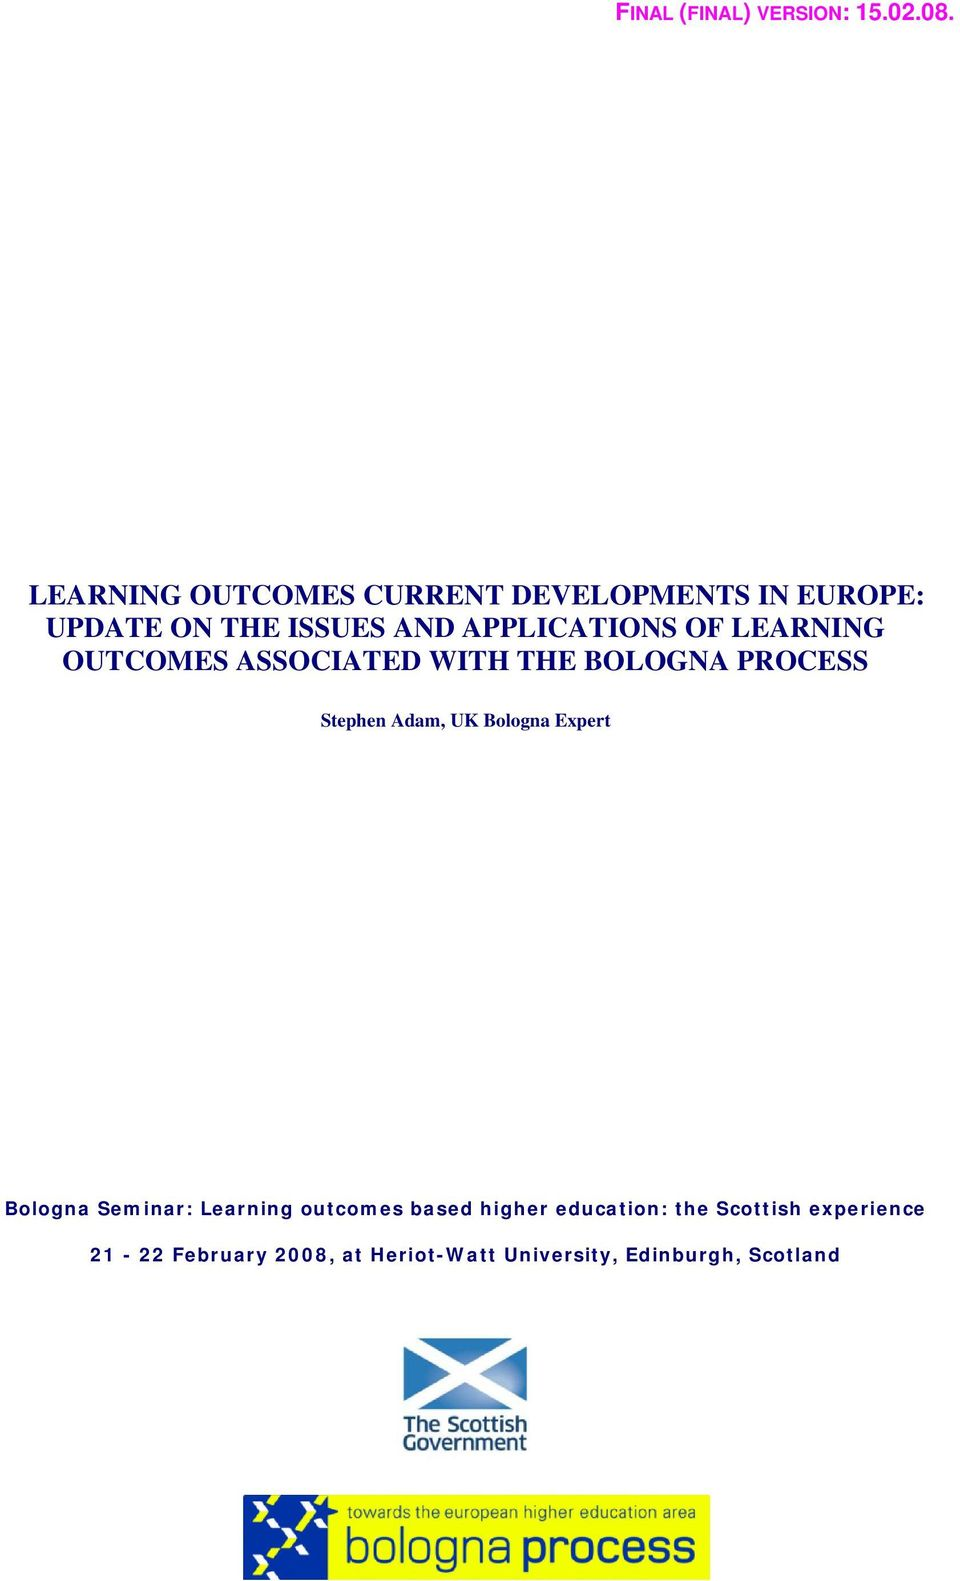 OF LEARNING OUTCOMES ASSOCIATED WITH THE BOLOGNA PROCESS Stephen Adam, UK Bologna Expert